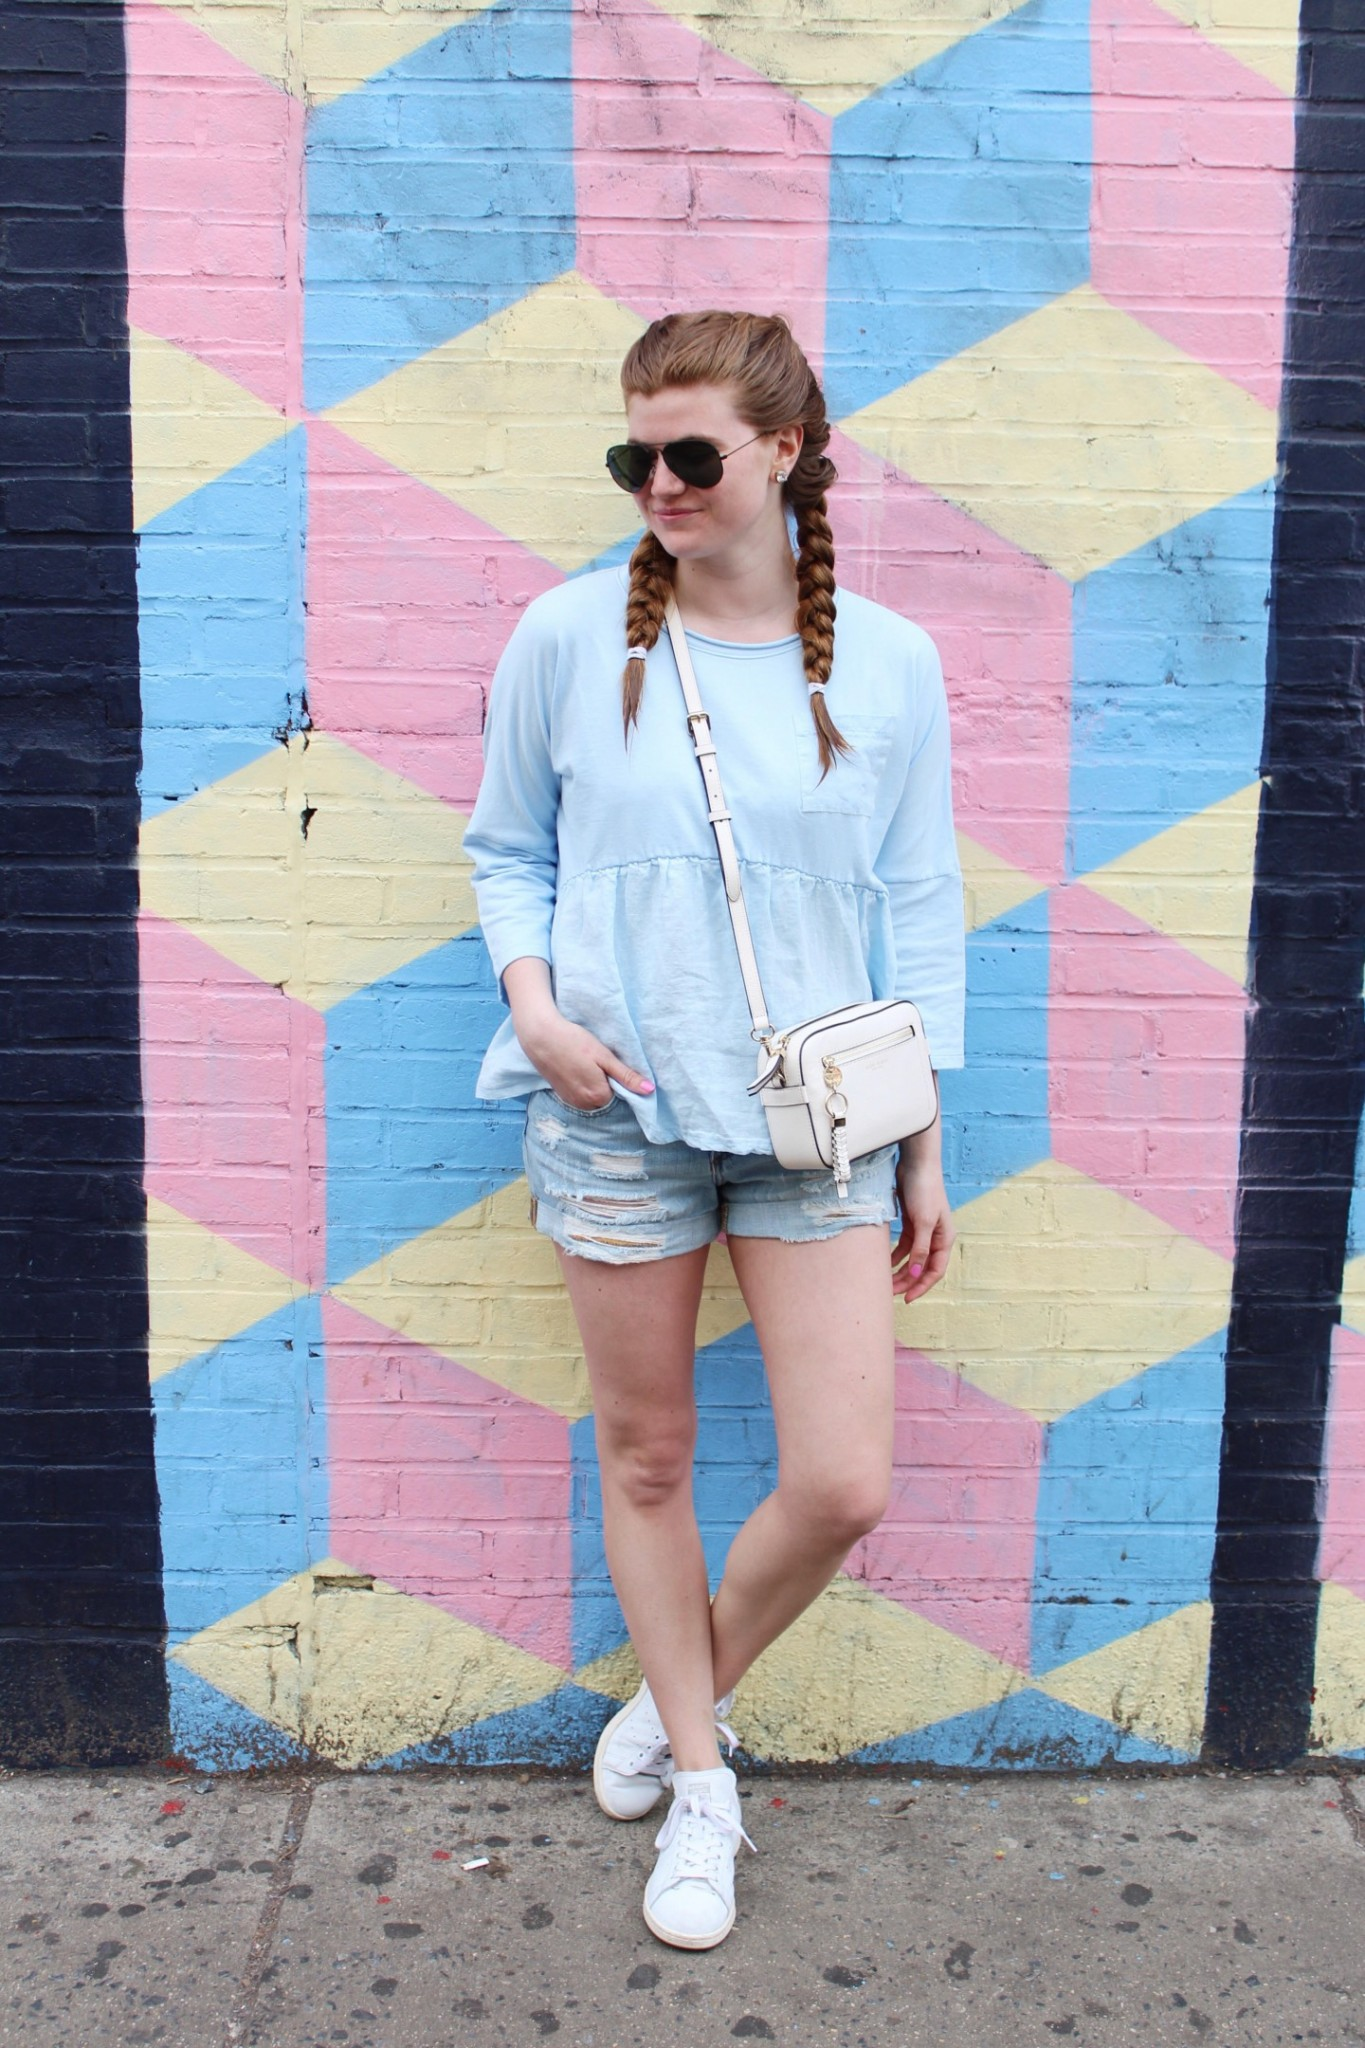 Lifestyle blogger Mollie Sheperdson shares tips on how to wear pastels in summer